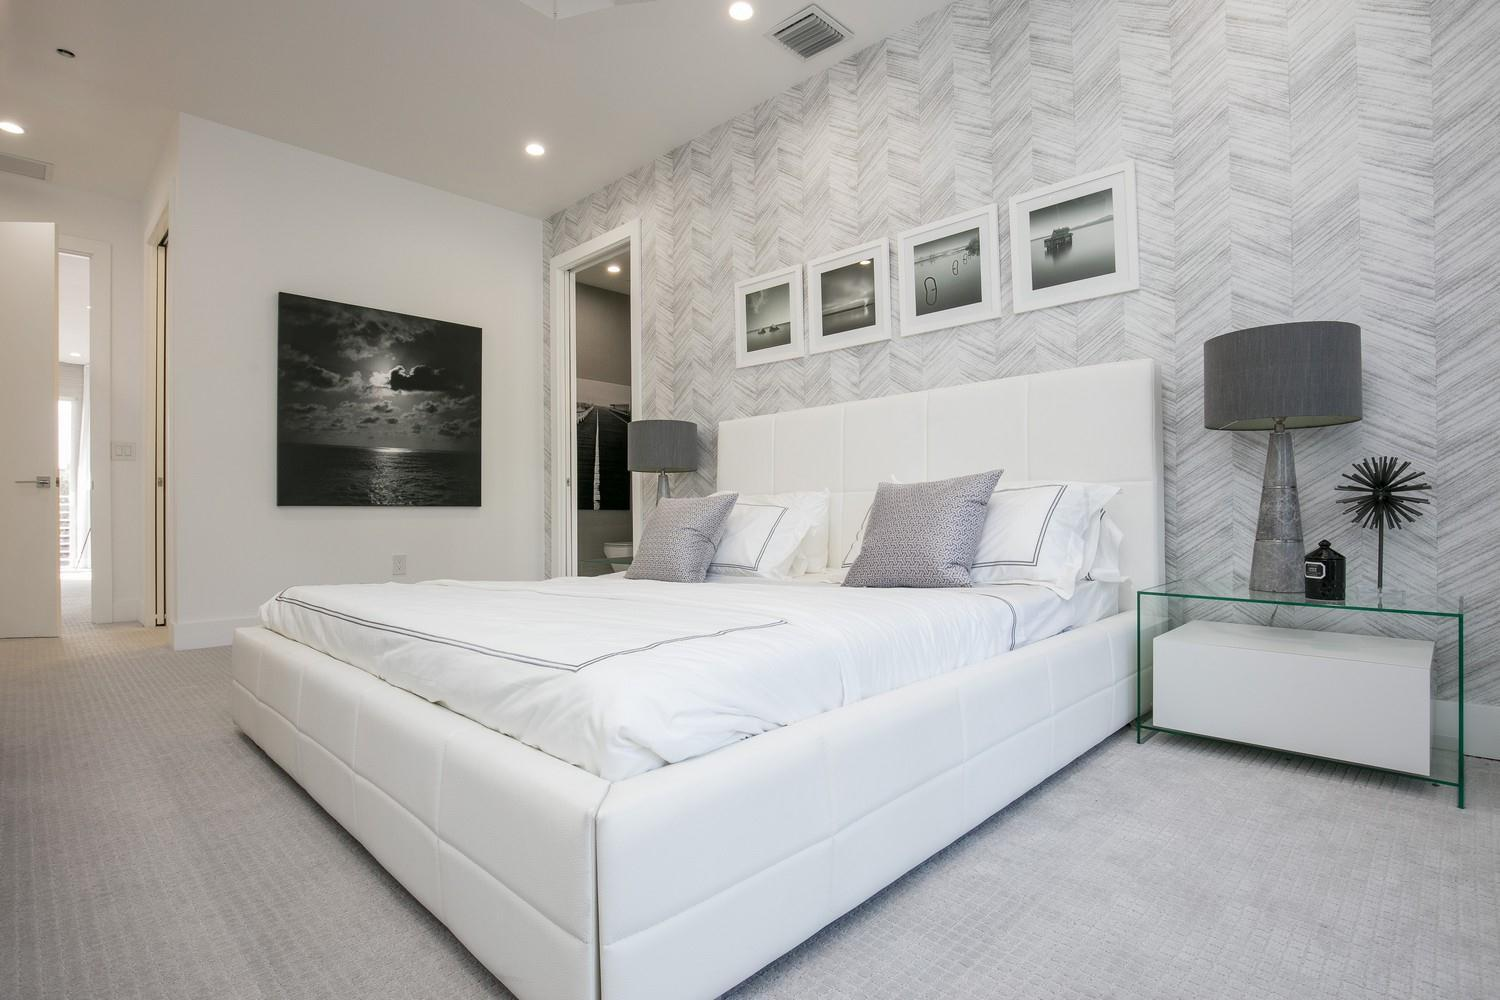 Bedroom featured in the Model A - East By Sobel Co in Broward County-Ft. Lauderdale, FL